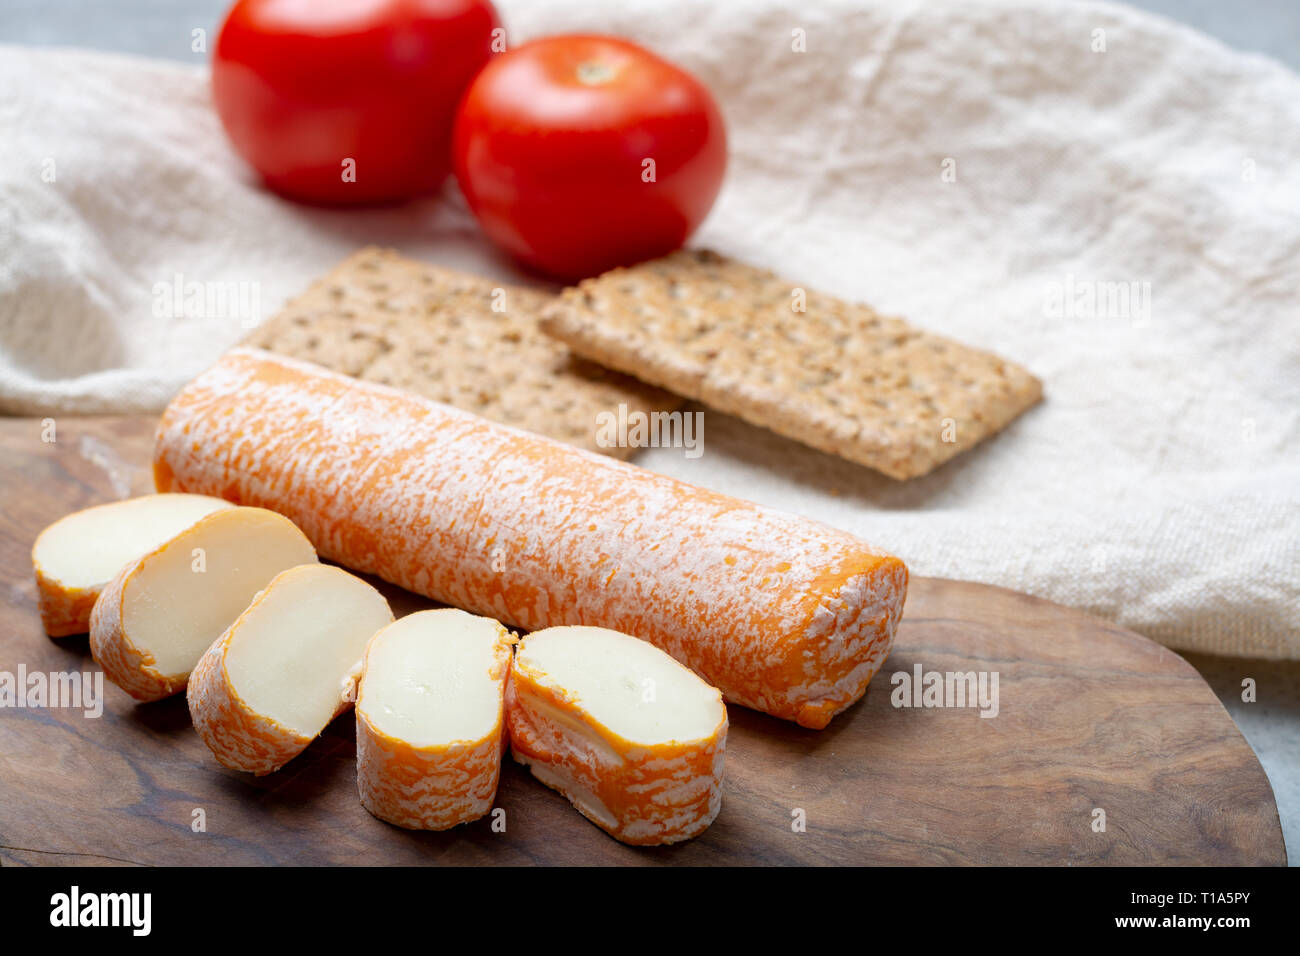 Fagotin cheese with  orange coloured rind made from cow milk in caves of Maredsous abbey, Belgium close up - Stock Image